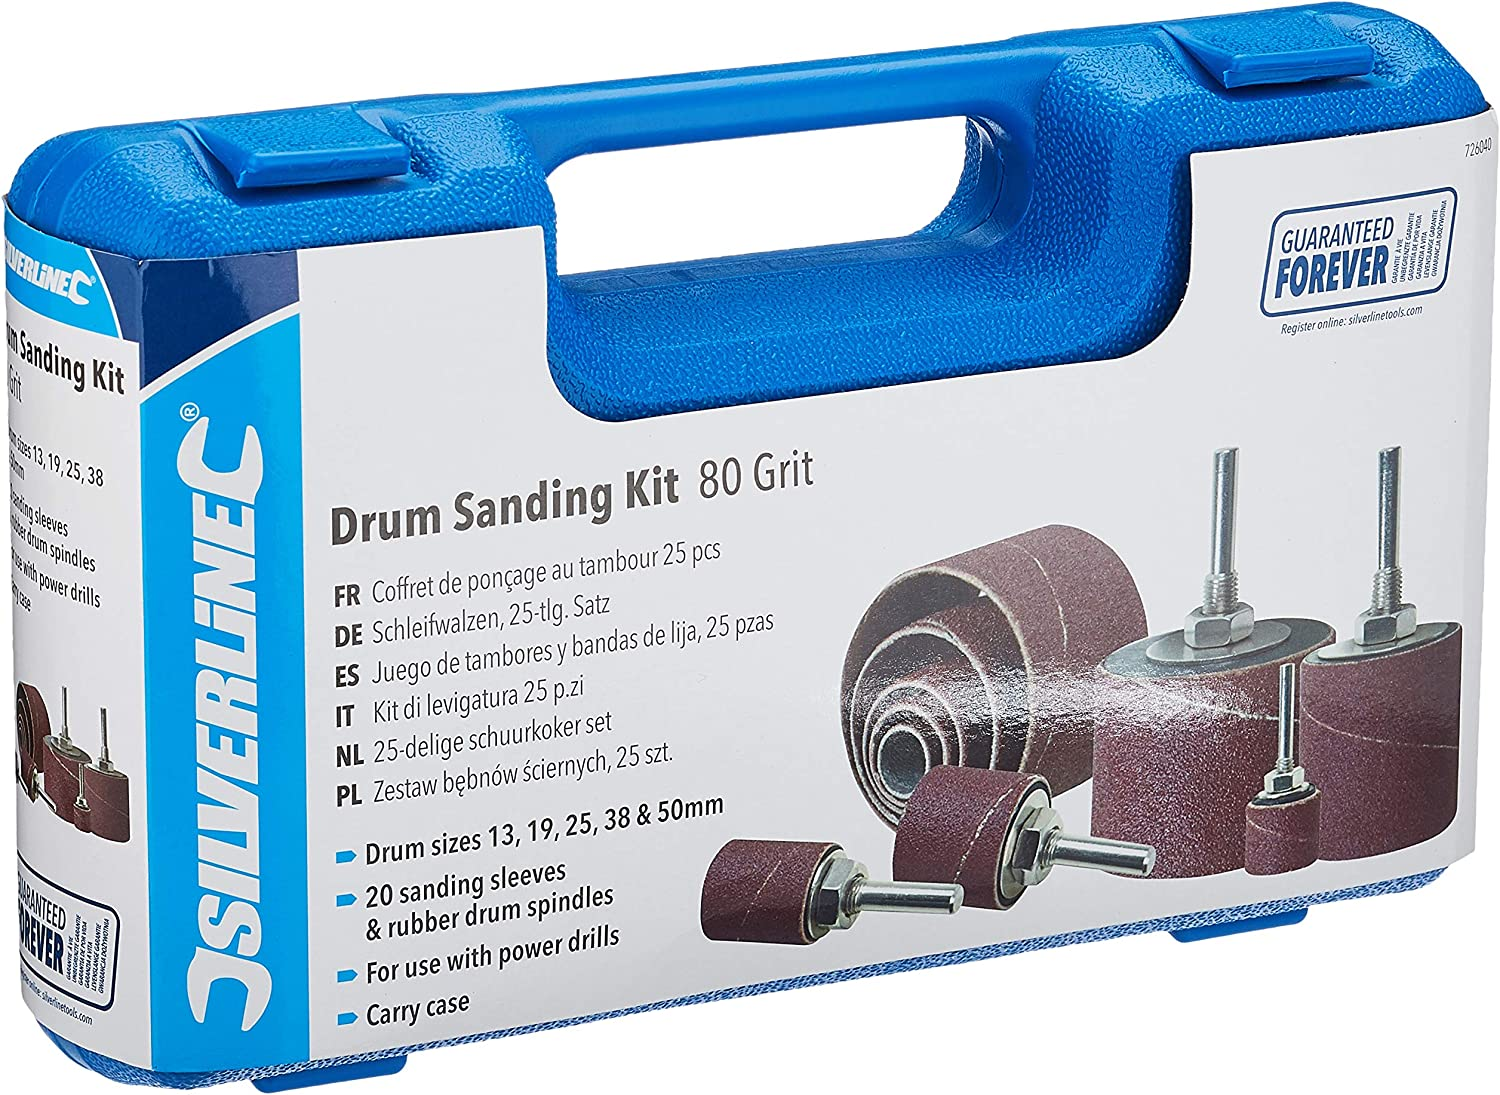 726040 Silverline 80 Grit Drum Sanding Kit Power